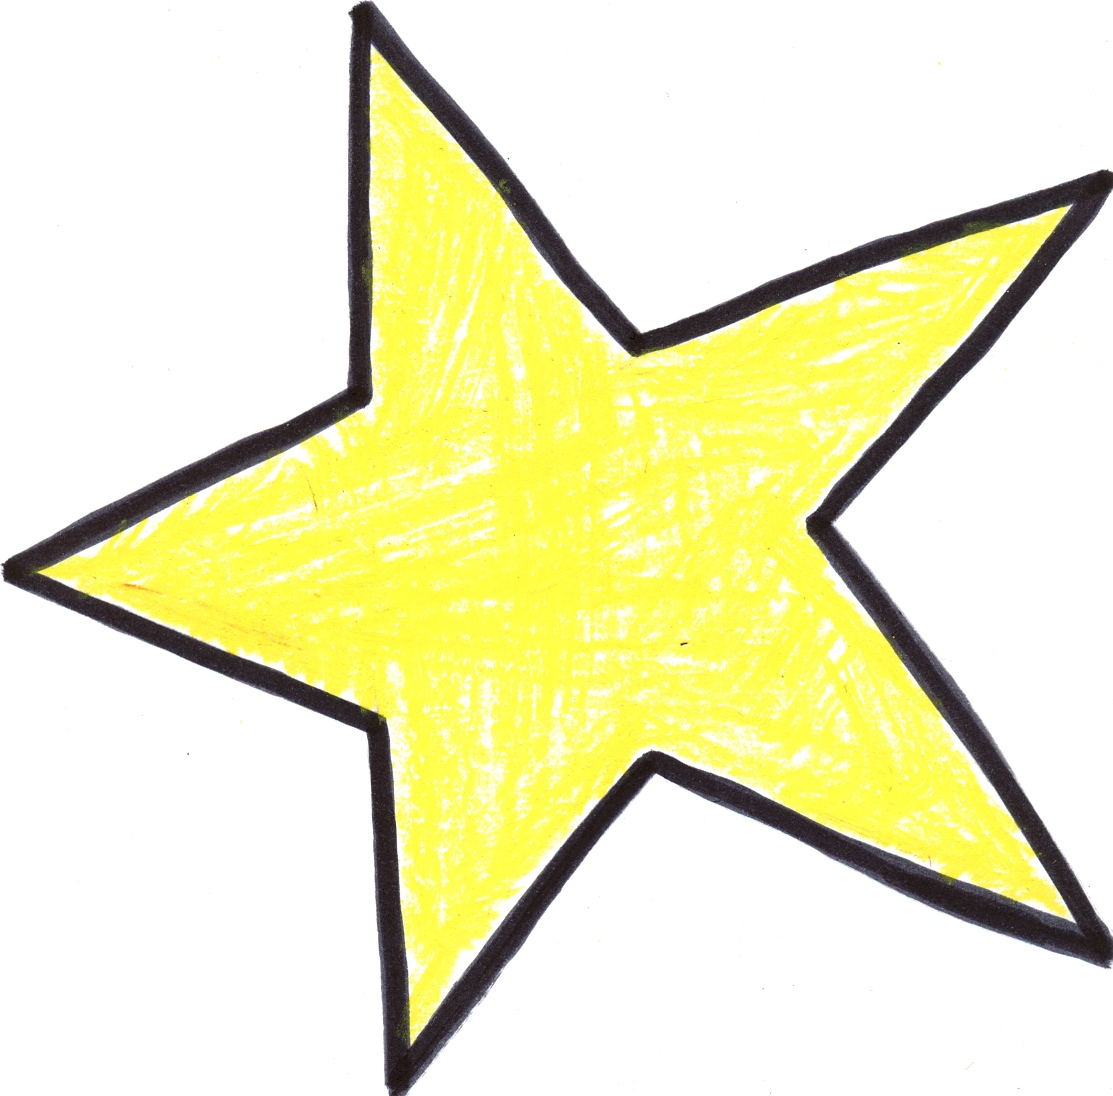 1113x1096 Star Clip Art Outline Free Clipart Images 3